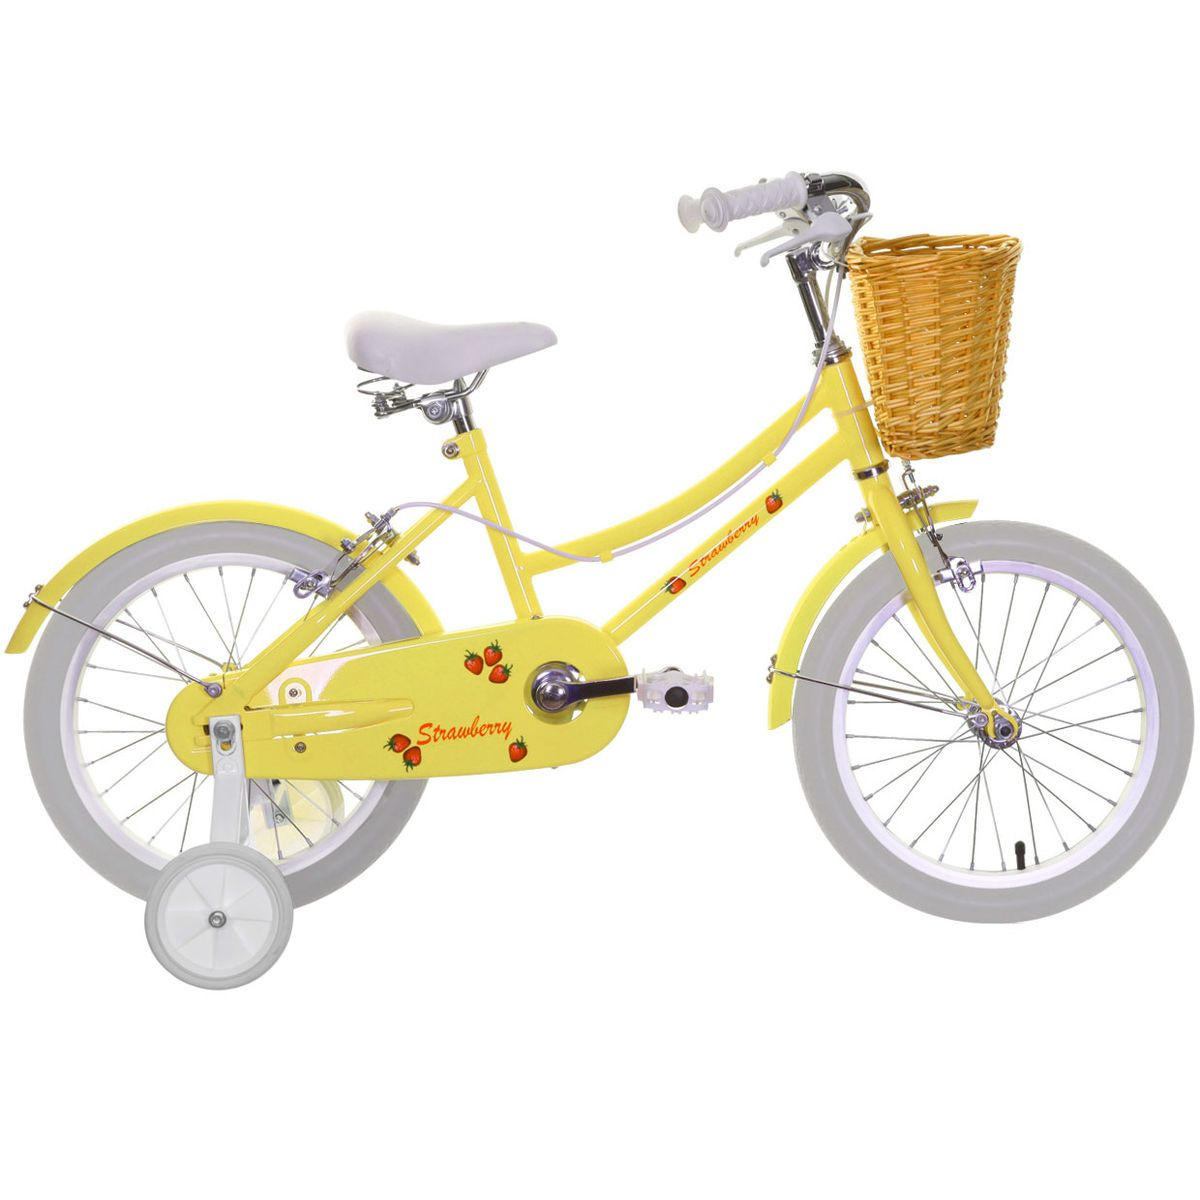 Bobbin Strawberry 14 2014 Kids Bikes Under 7 Kids Bike Bike Retro Kids